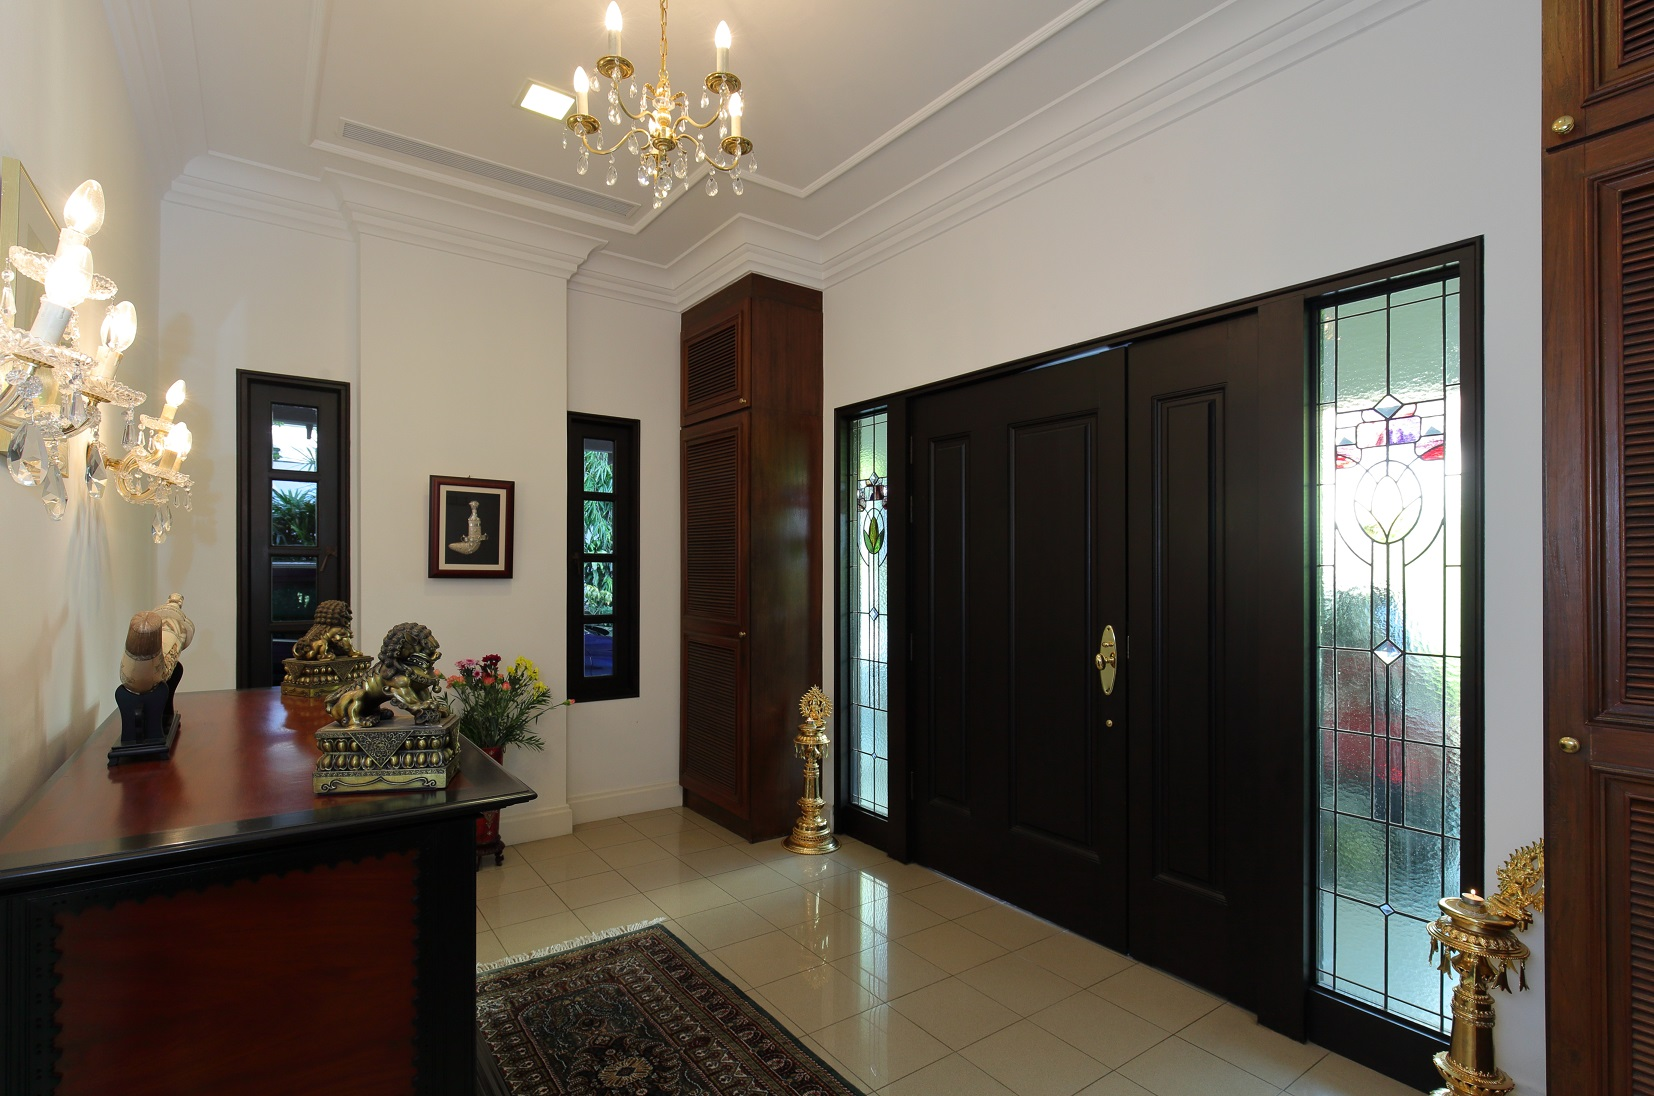 The entrance hall of the house (Photo: Samuel Isaac Chua/EdgeProp Singapore) - EDGEPROP SINGAPORE